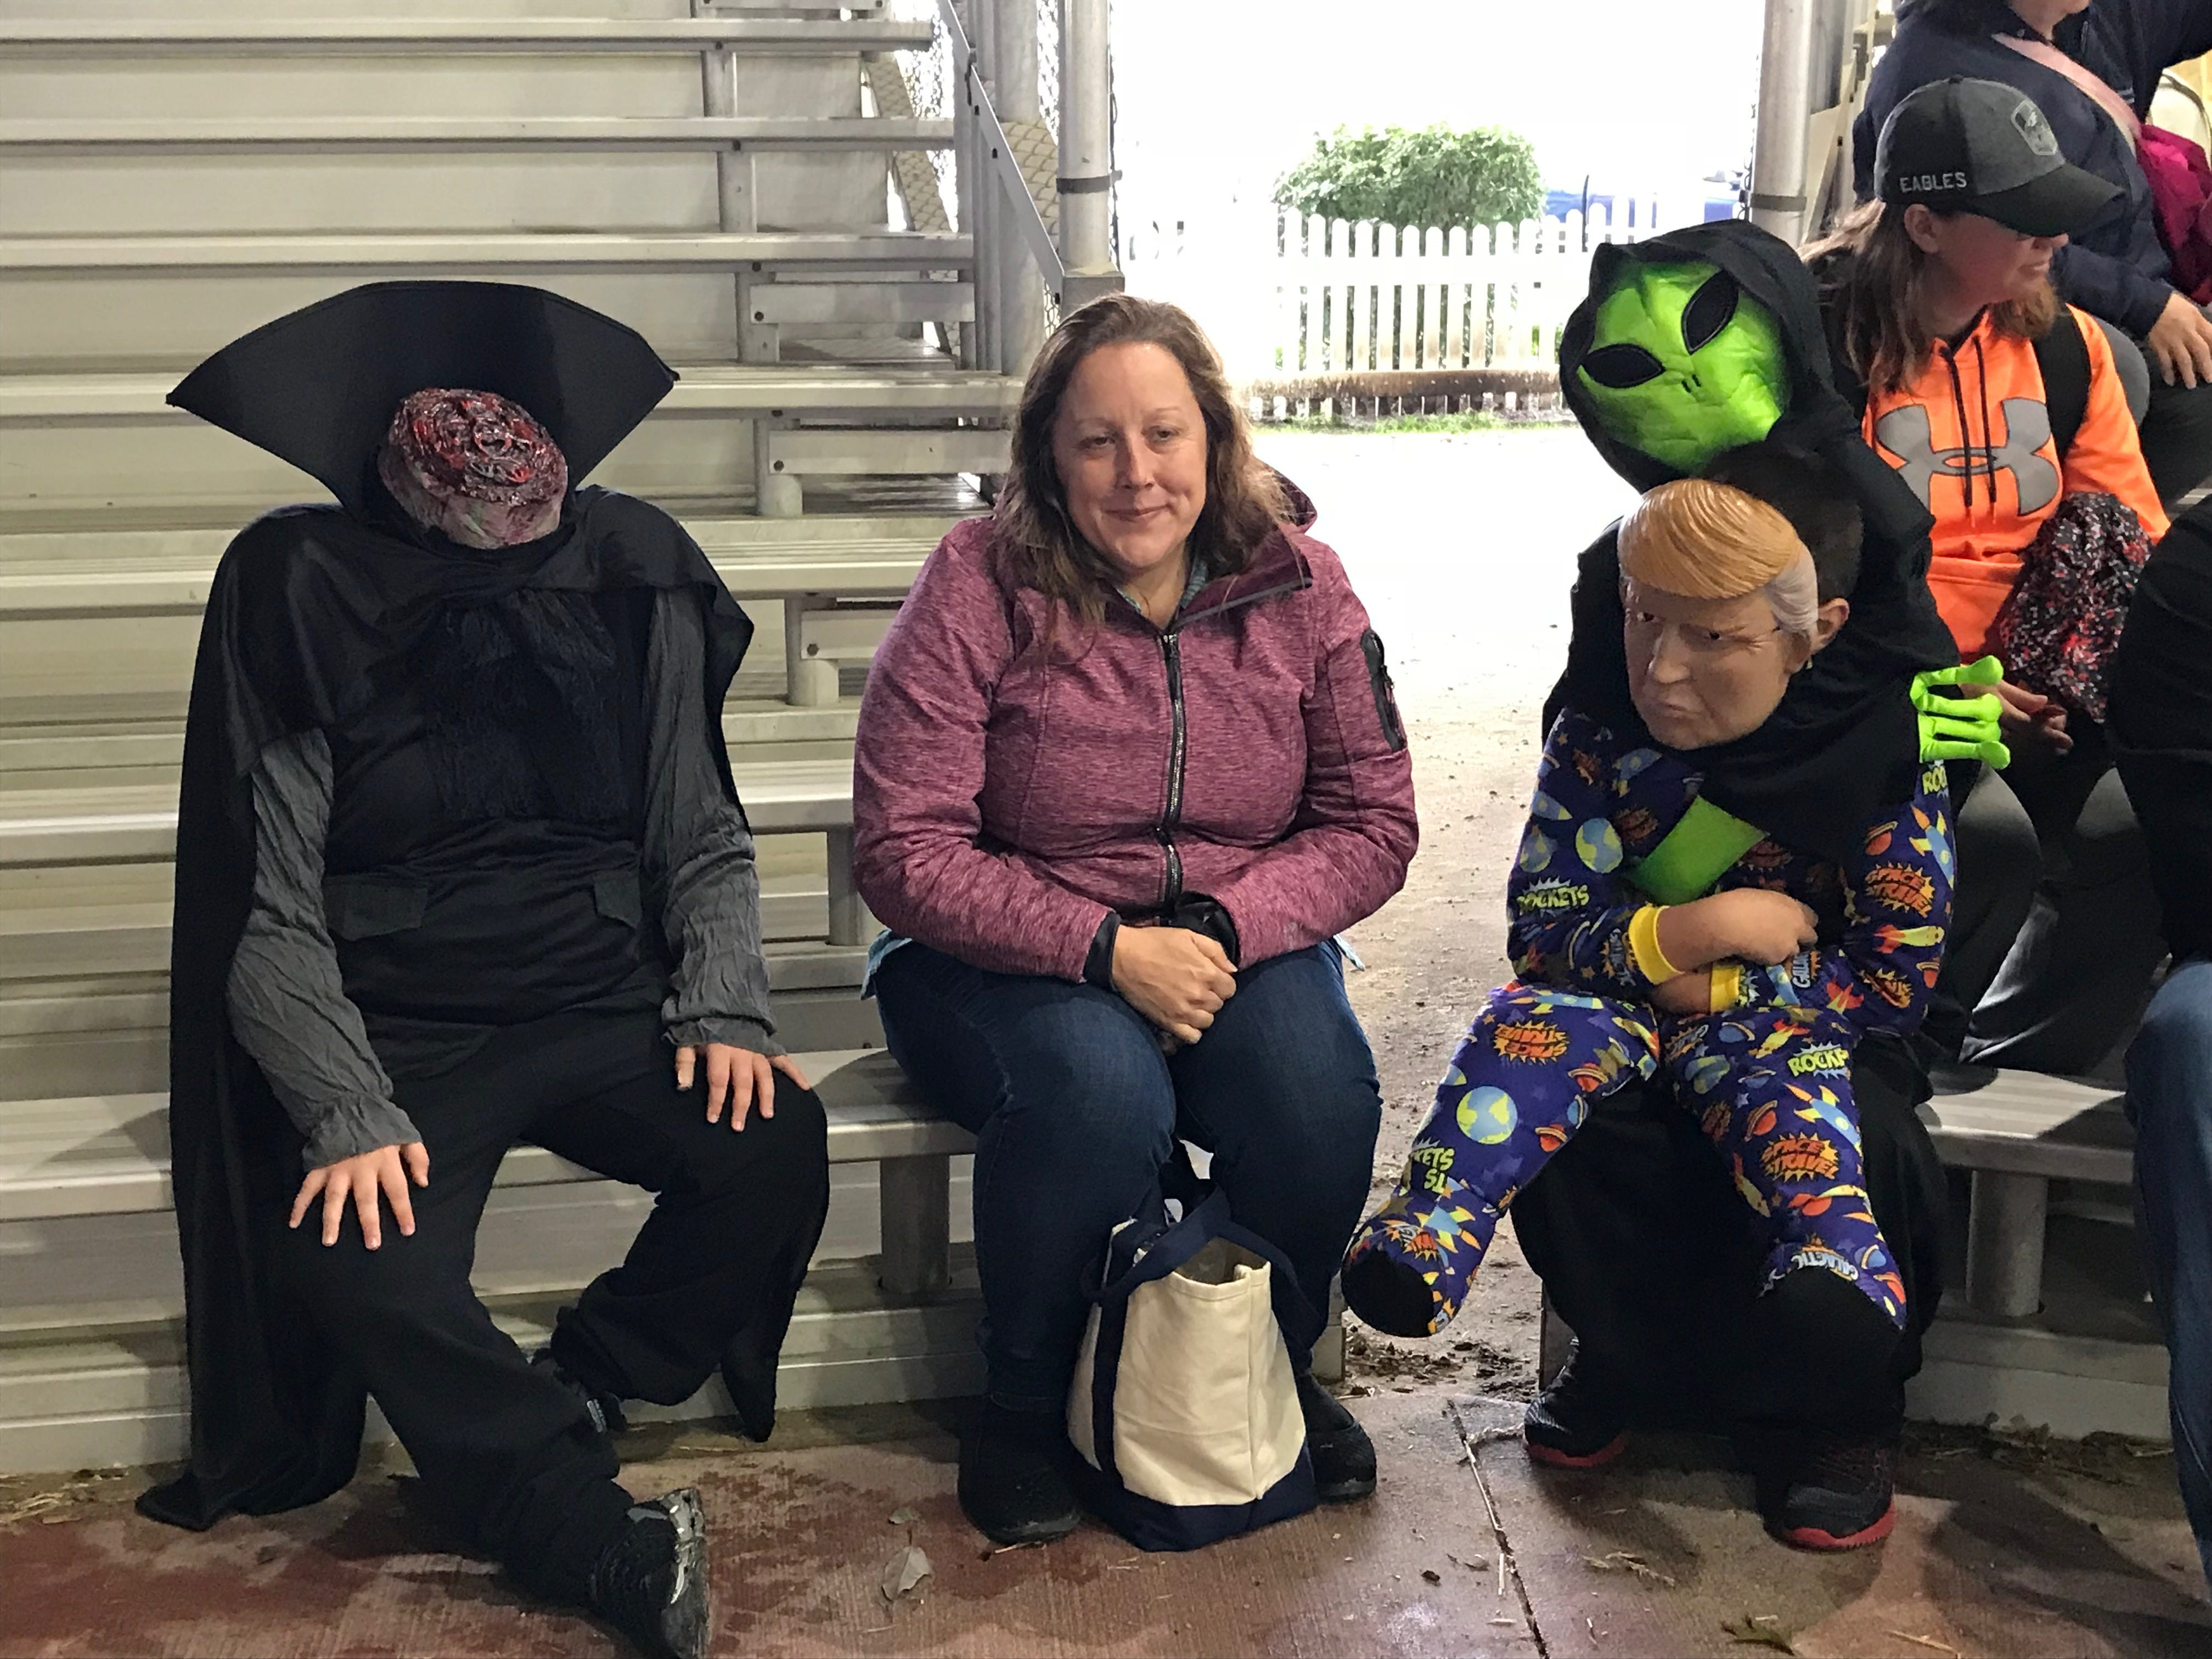 Everybody always looked to the right, where Trump appears to be embraced by his alien master, and completely missed the headless horseman to the left at Saturday's first Great Delaware Pumpkin Carve.